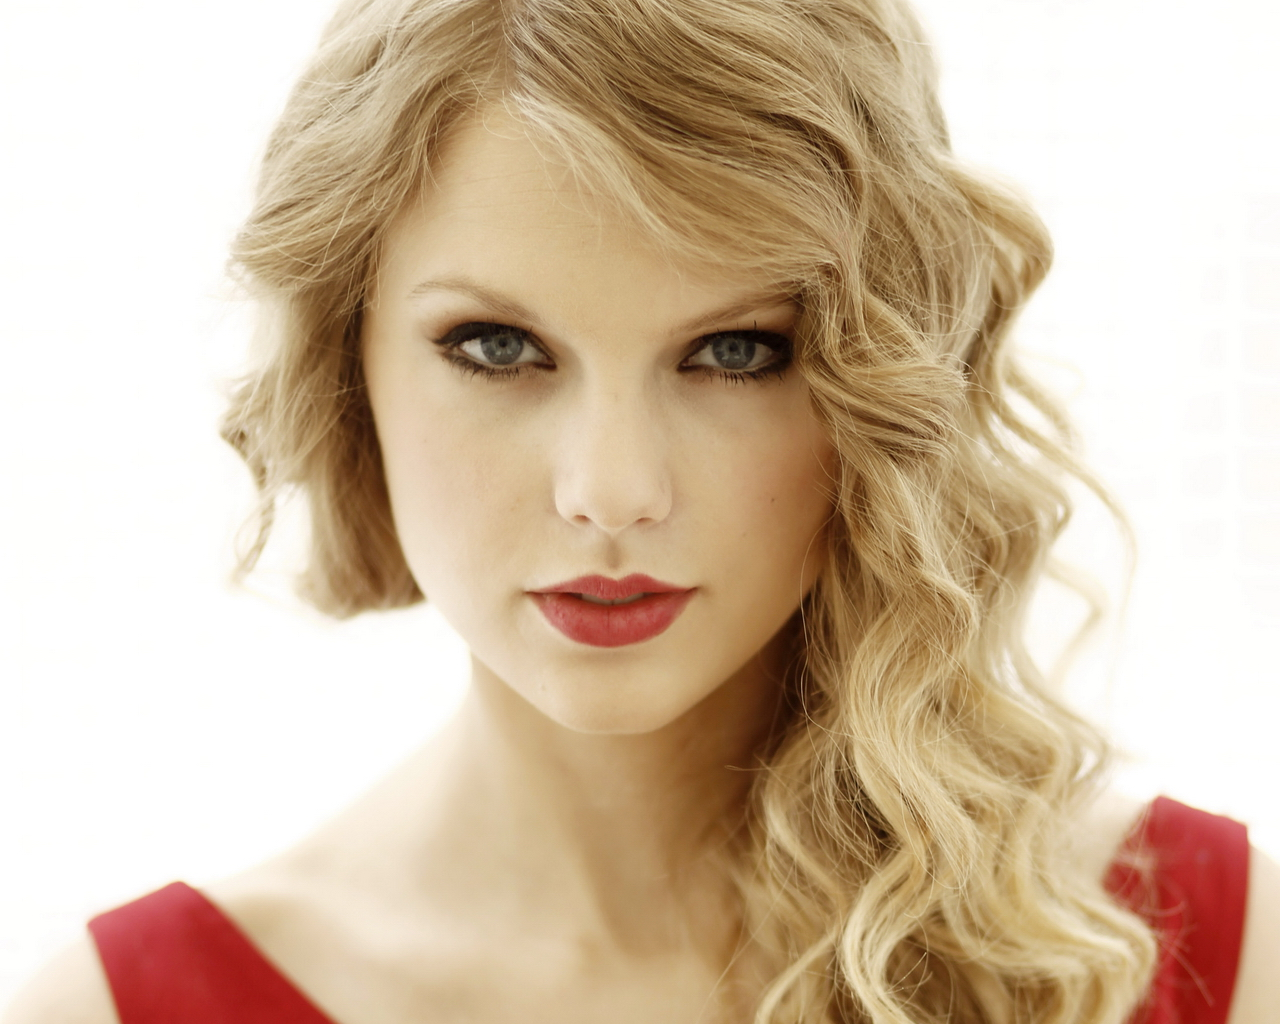 Taylor Swift in Red Dress 576.43 Kb